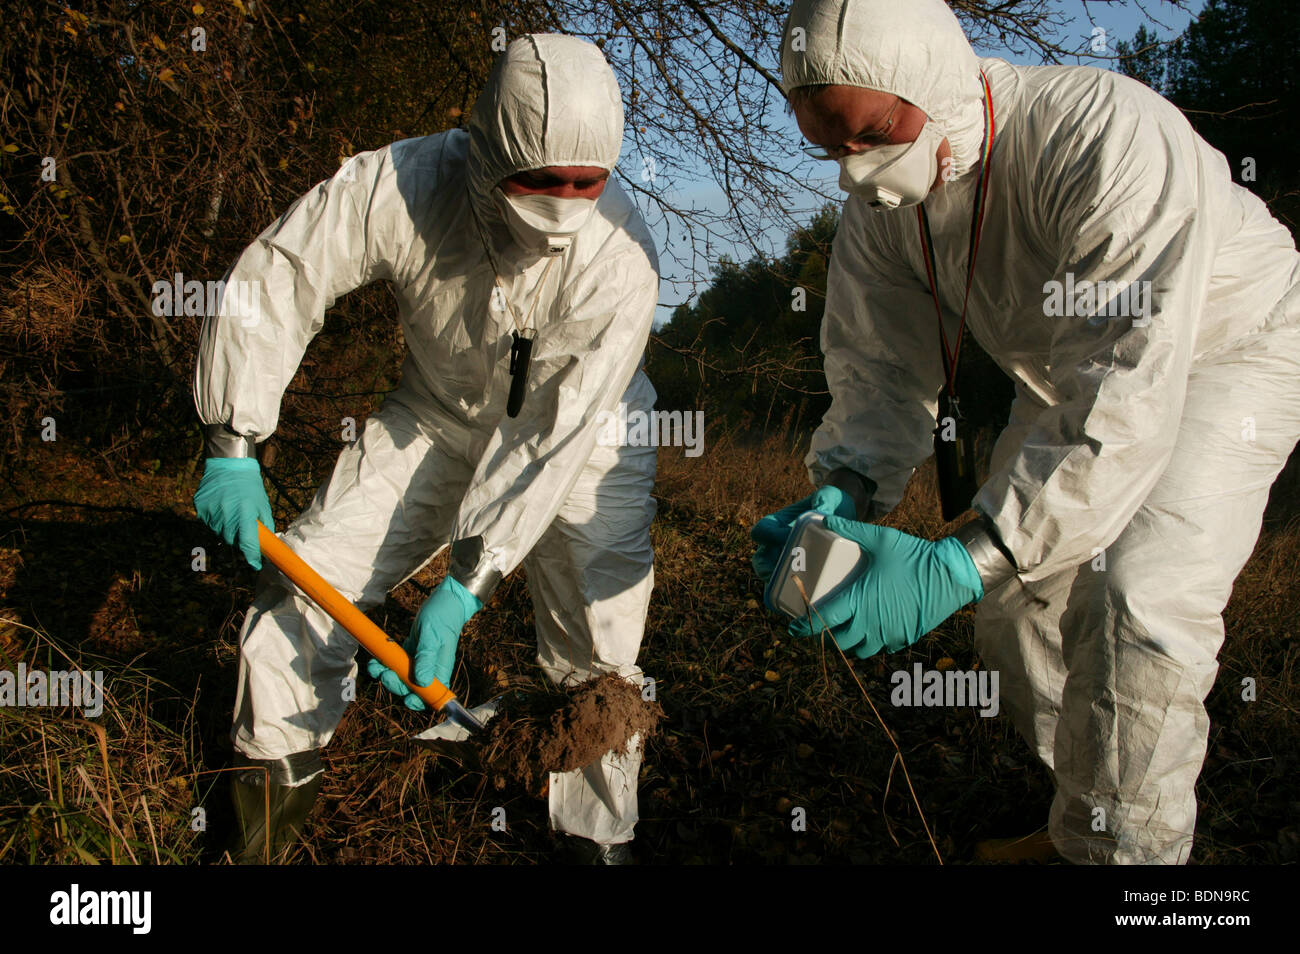 On the ground action training for Greenpeace Radiation Safety Advisors. Measuring radiation levels around Chernobyl - Stock Image